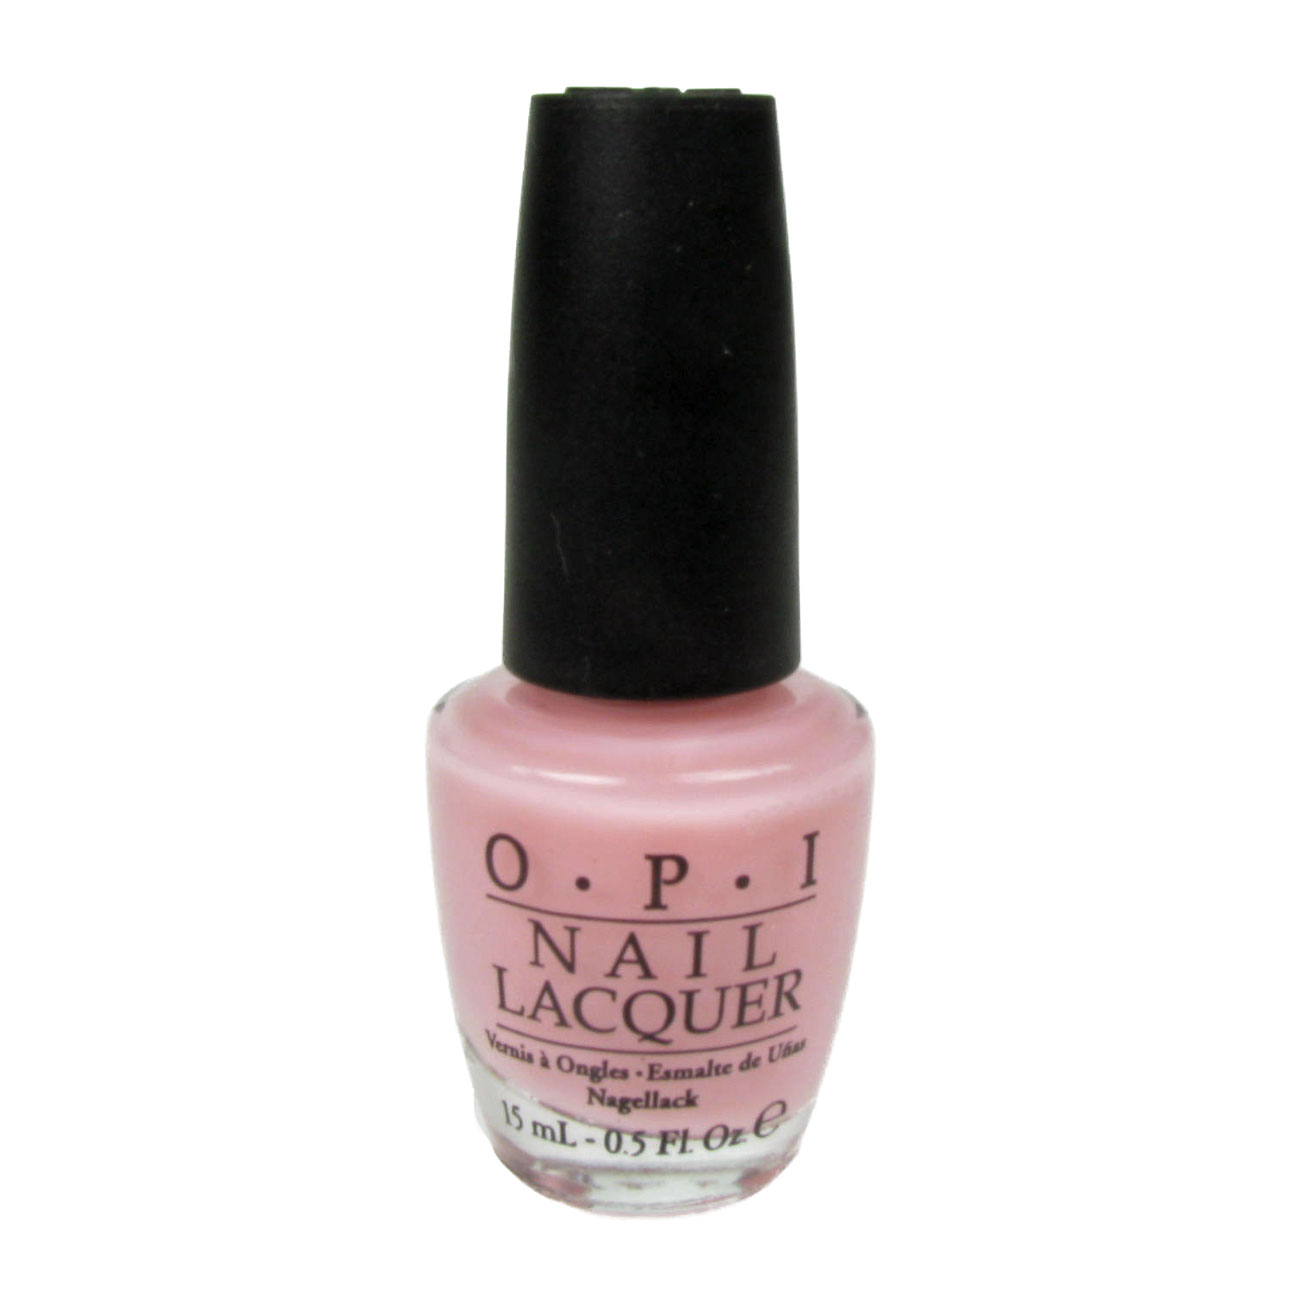 OPI  Nail Lacquer Polish Varnish 15ml In The Spot-Light Pink NL F27 Enlarged Preview